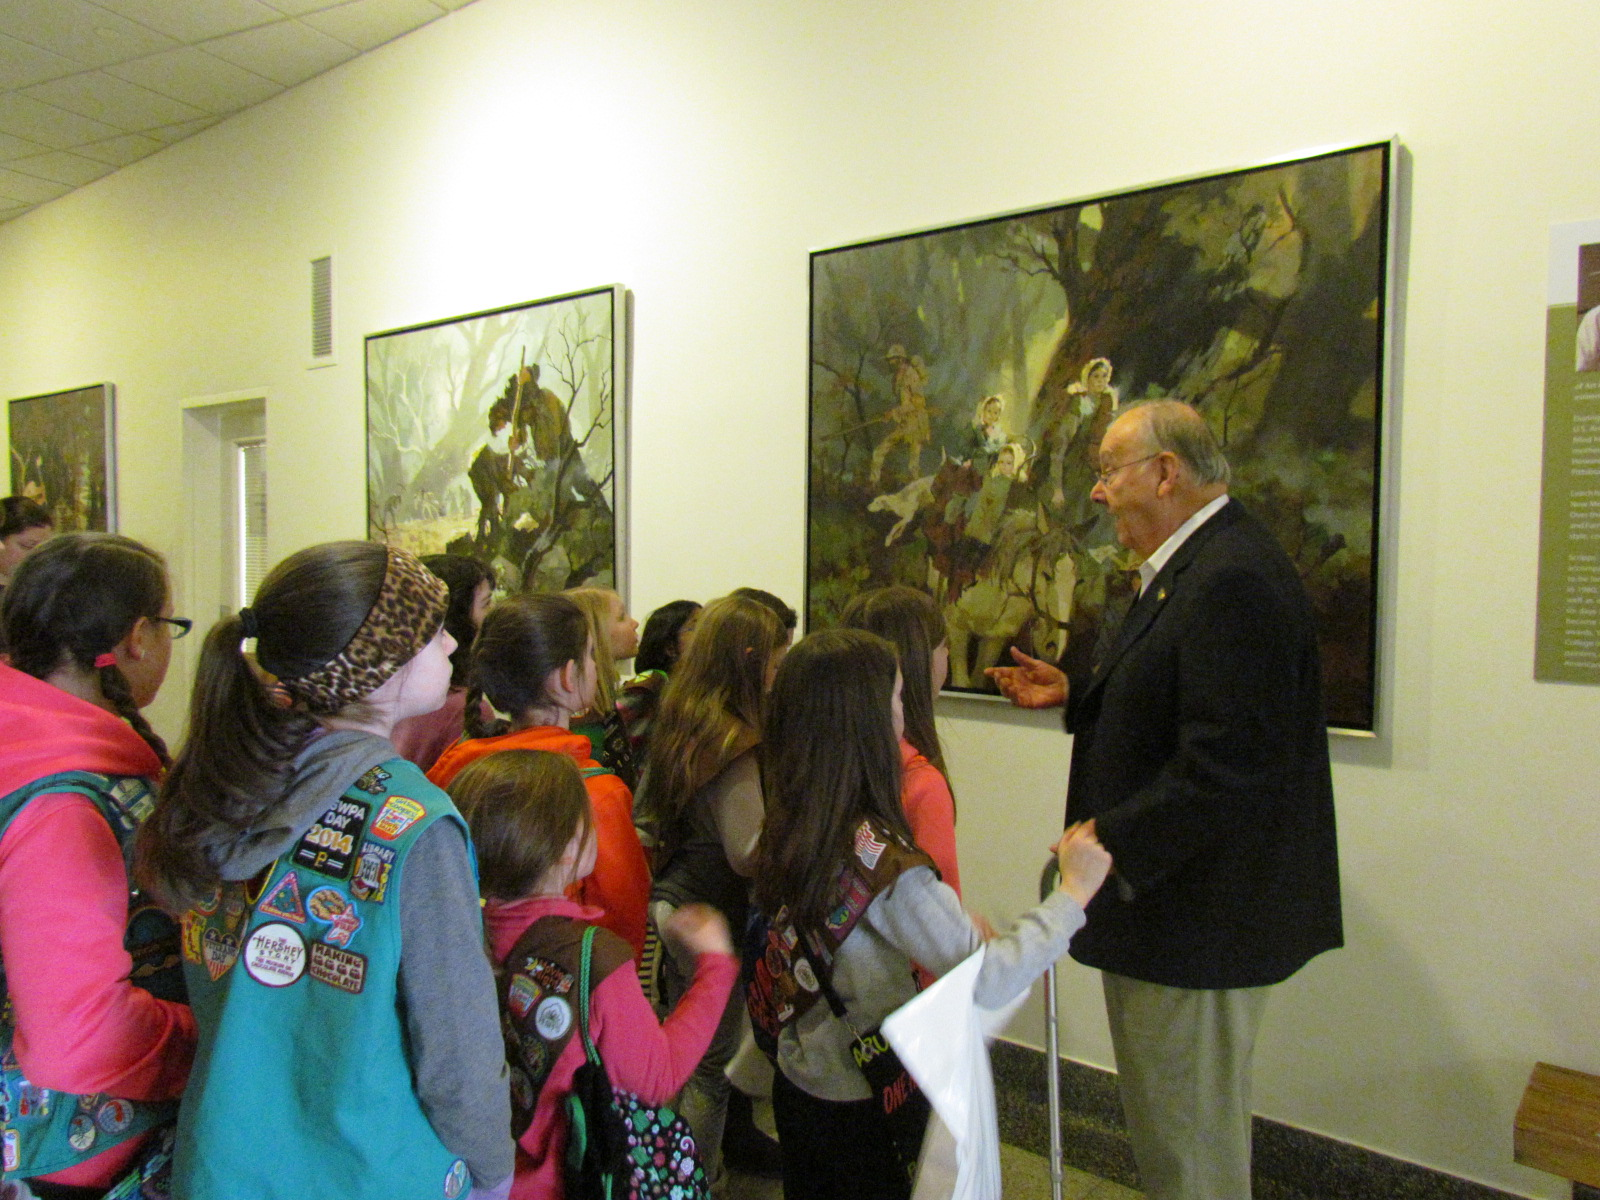 Jack Sheehan, History Center and Fort Pitt Museum docent, with a Girl Scout troop at the Fort Pitt Museum.